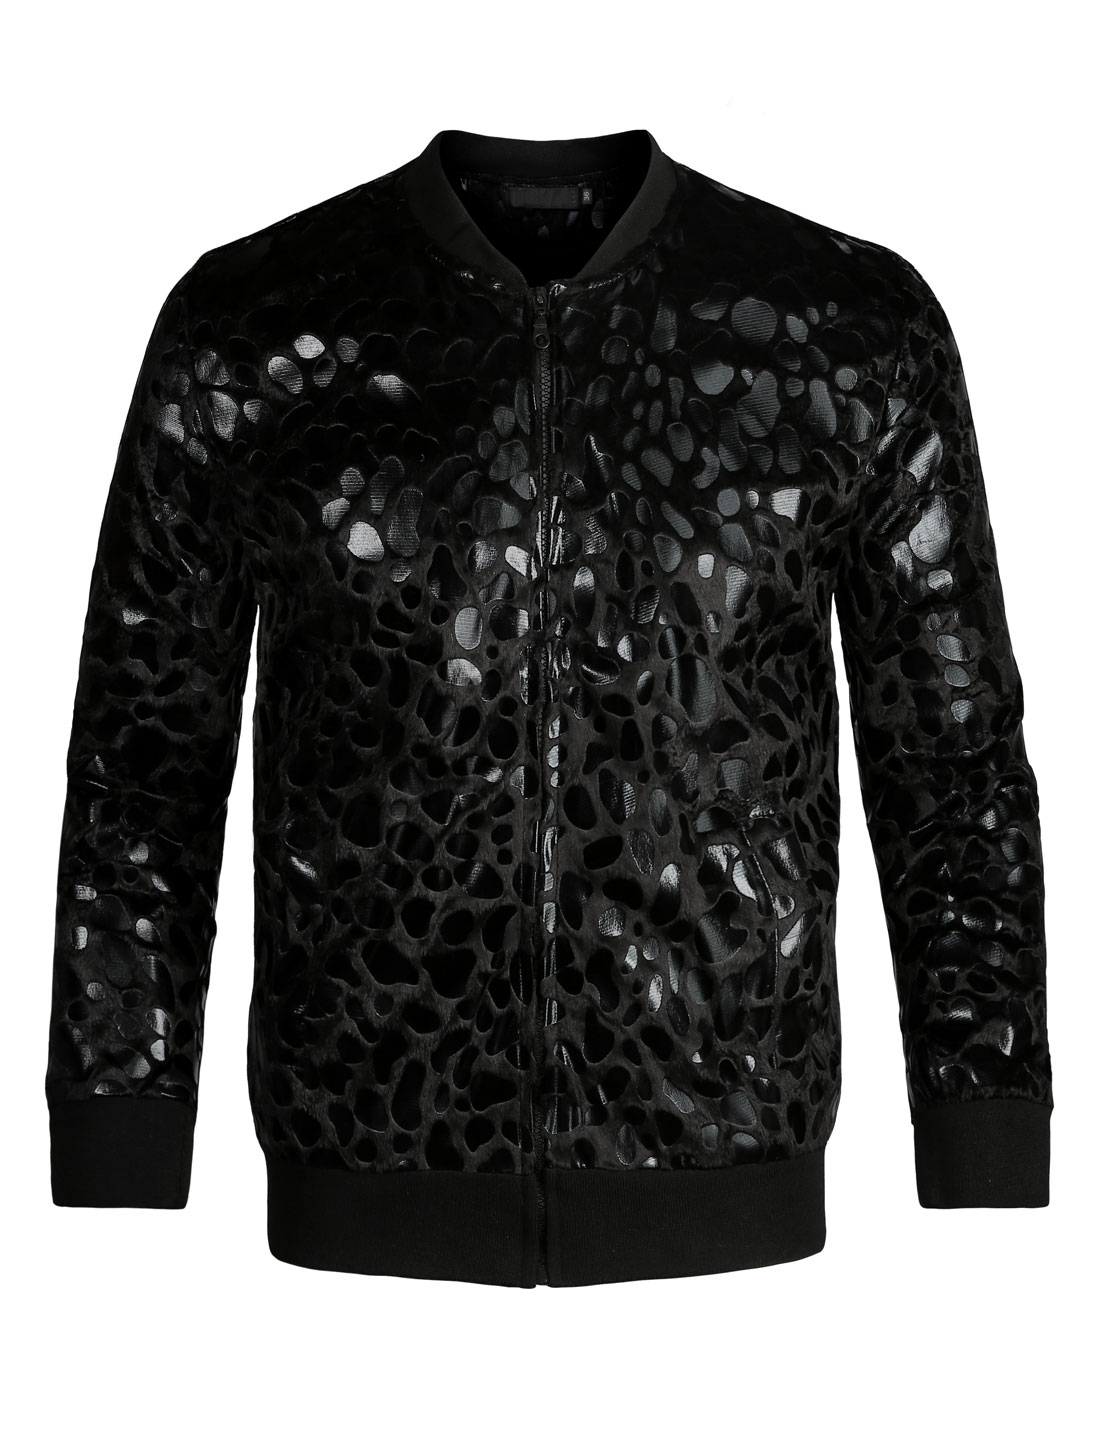 Men Fashion Slant Pockets Allover Leopard Print Casual Jacket Black M